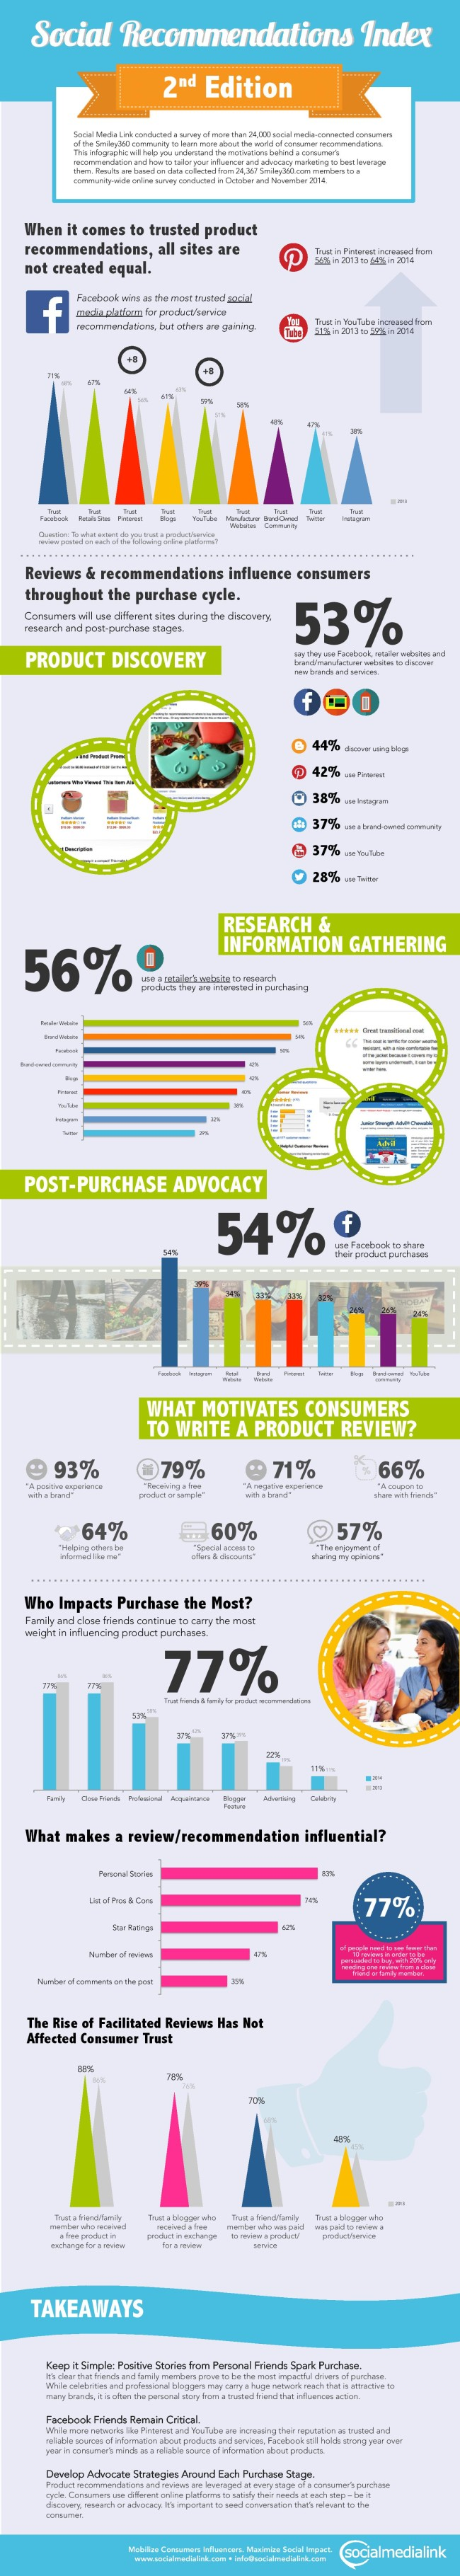 Social_Recommendations_Index_Infographic_2014-page-001